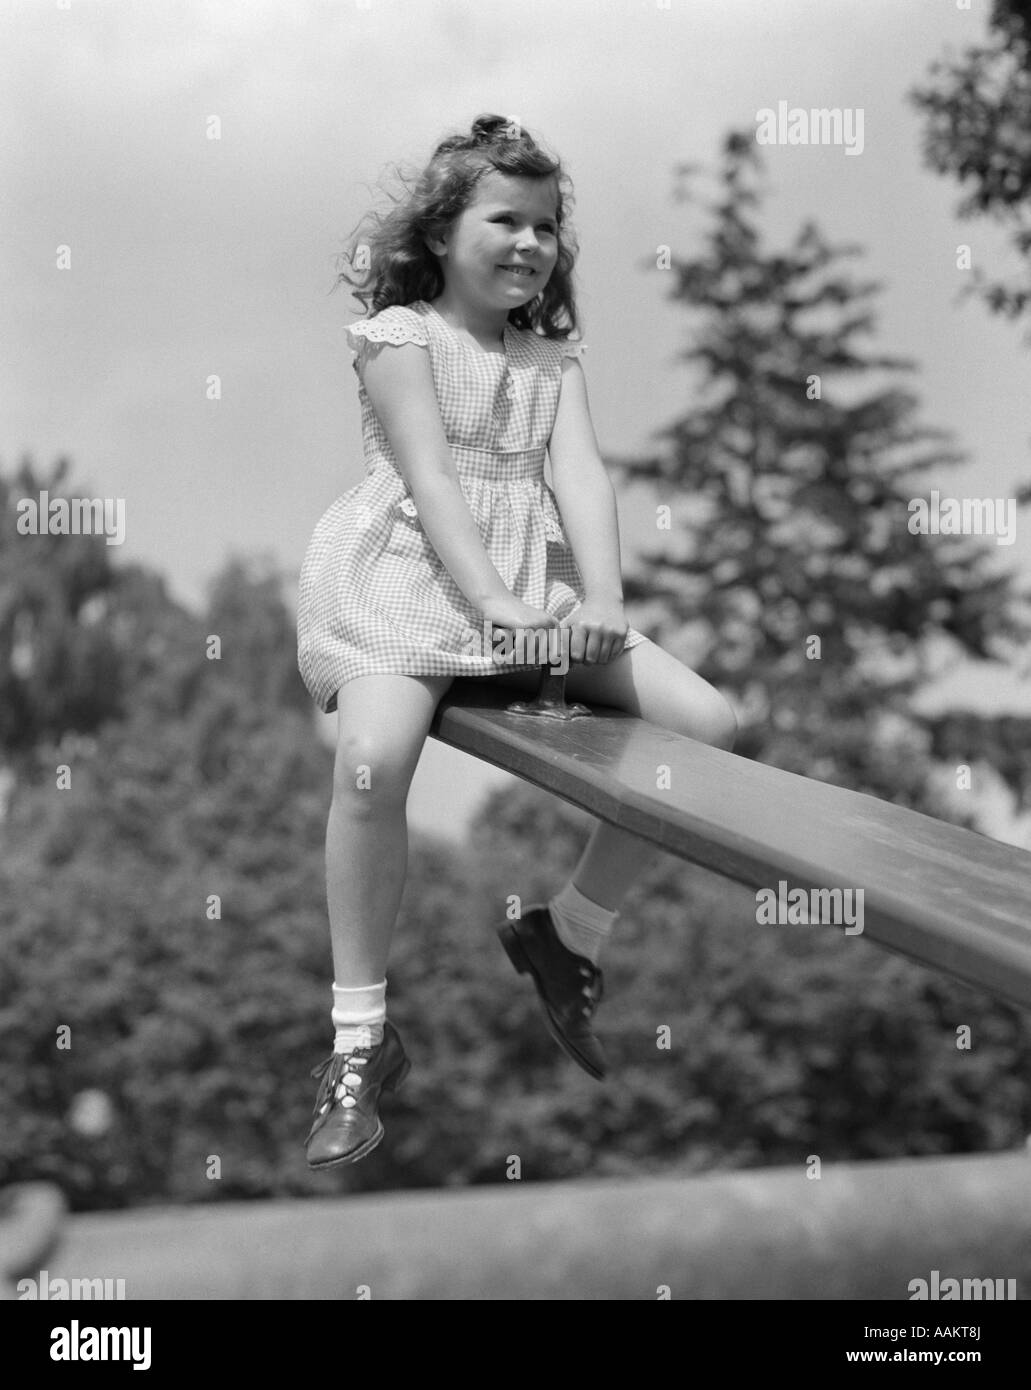 1950s 7 Year Old Girl Wearing Dress Sit On Seesaw Teeter